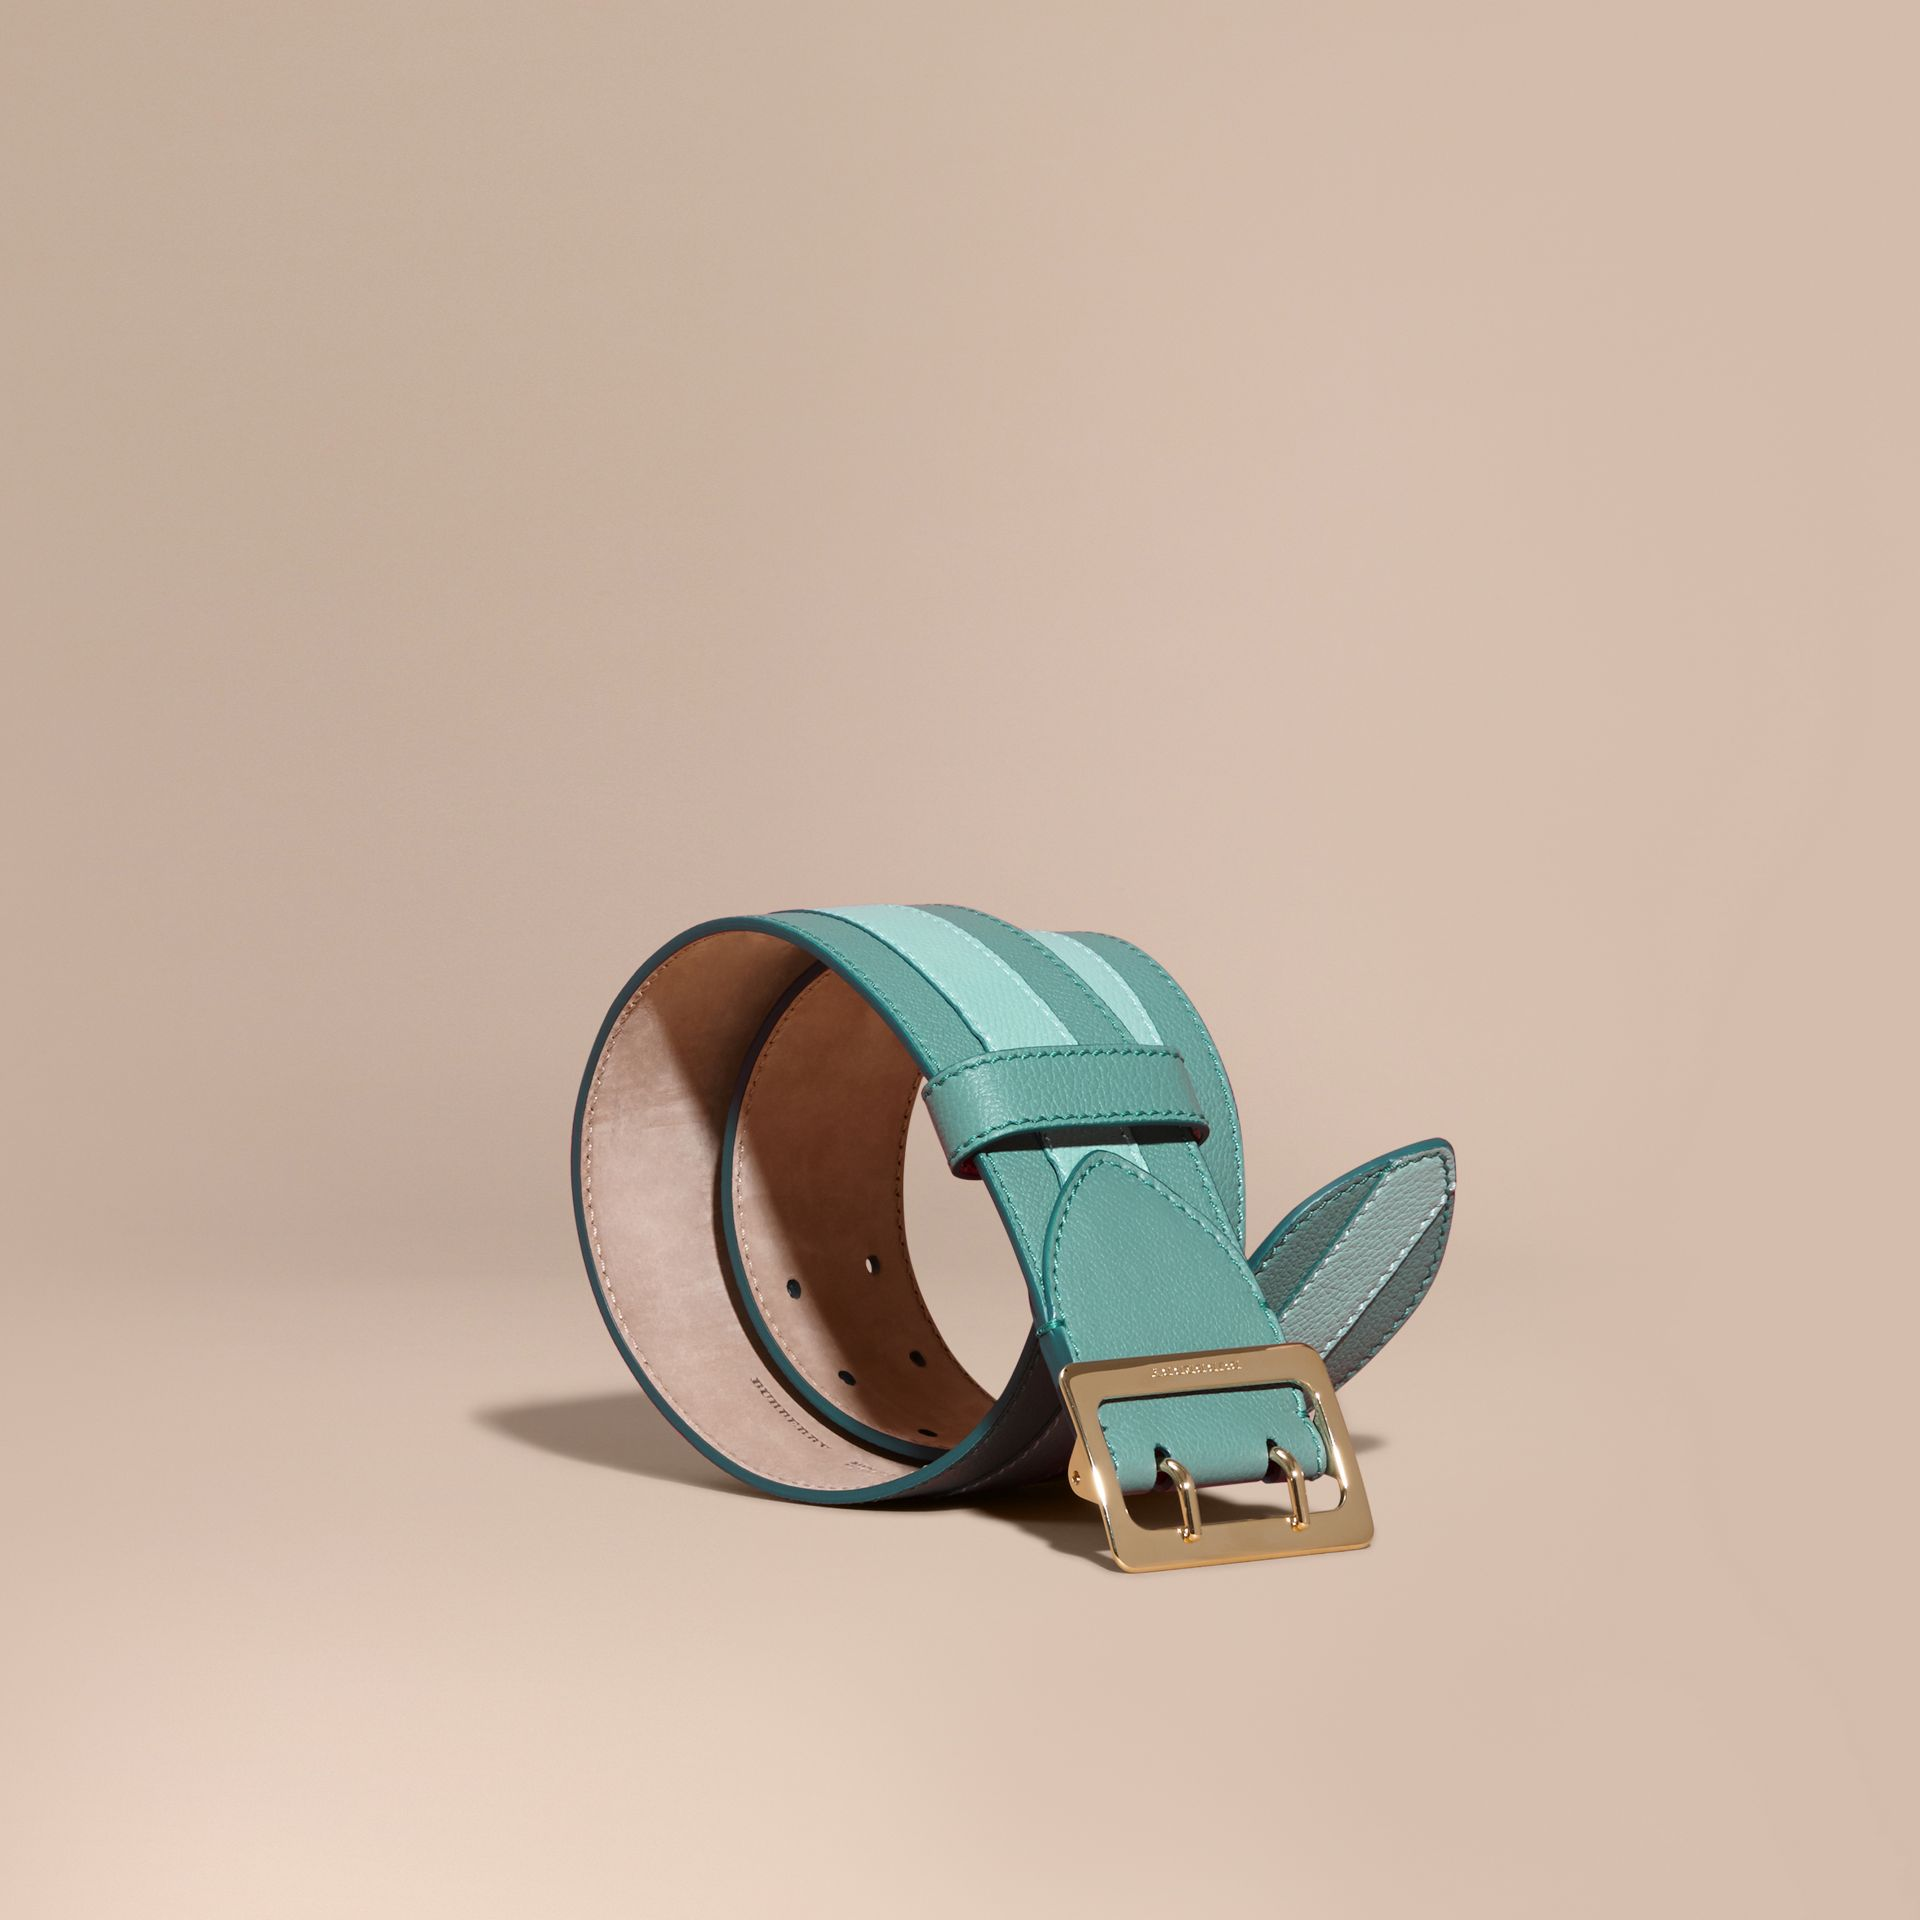 Celadon blue Appliquéd Textured Suede and Leather Belt Celadon Blue - gallery image 1